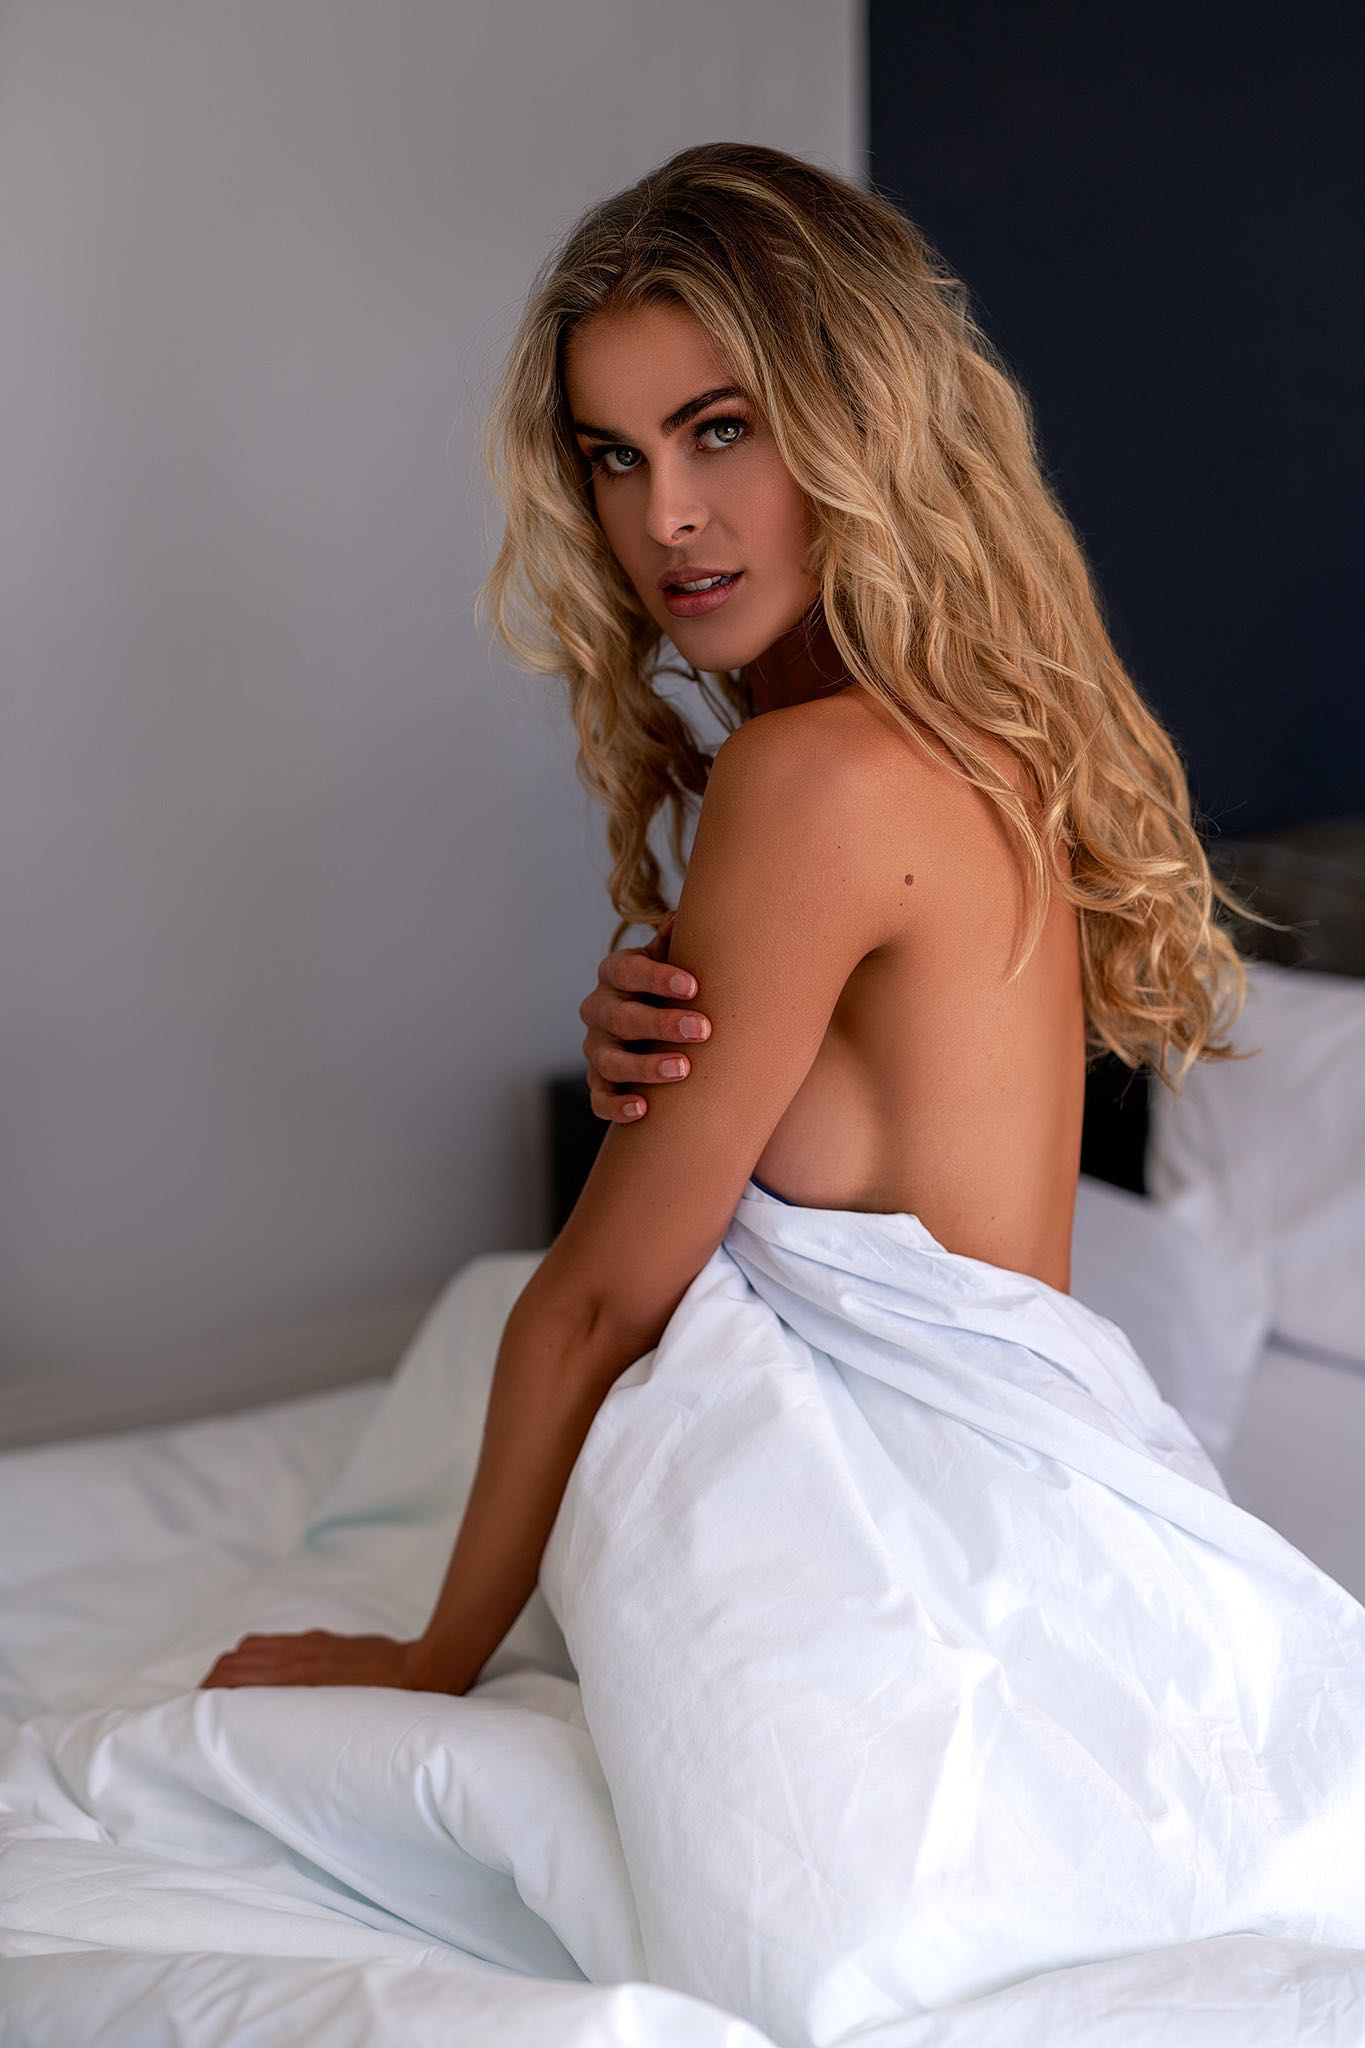 Meet Katelyn Barkhuizen in our South African Babes feature